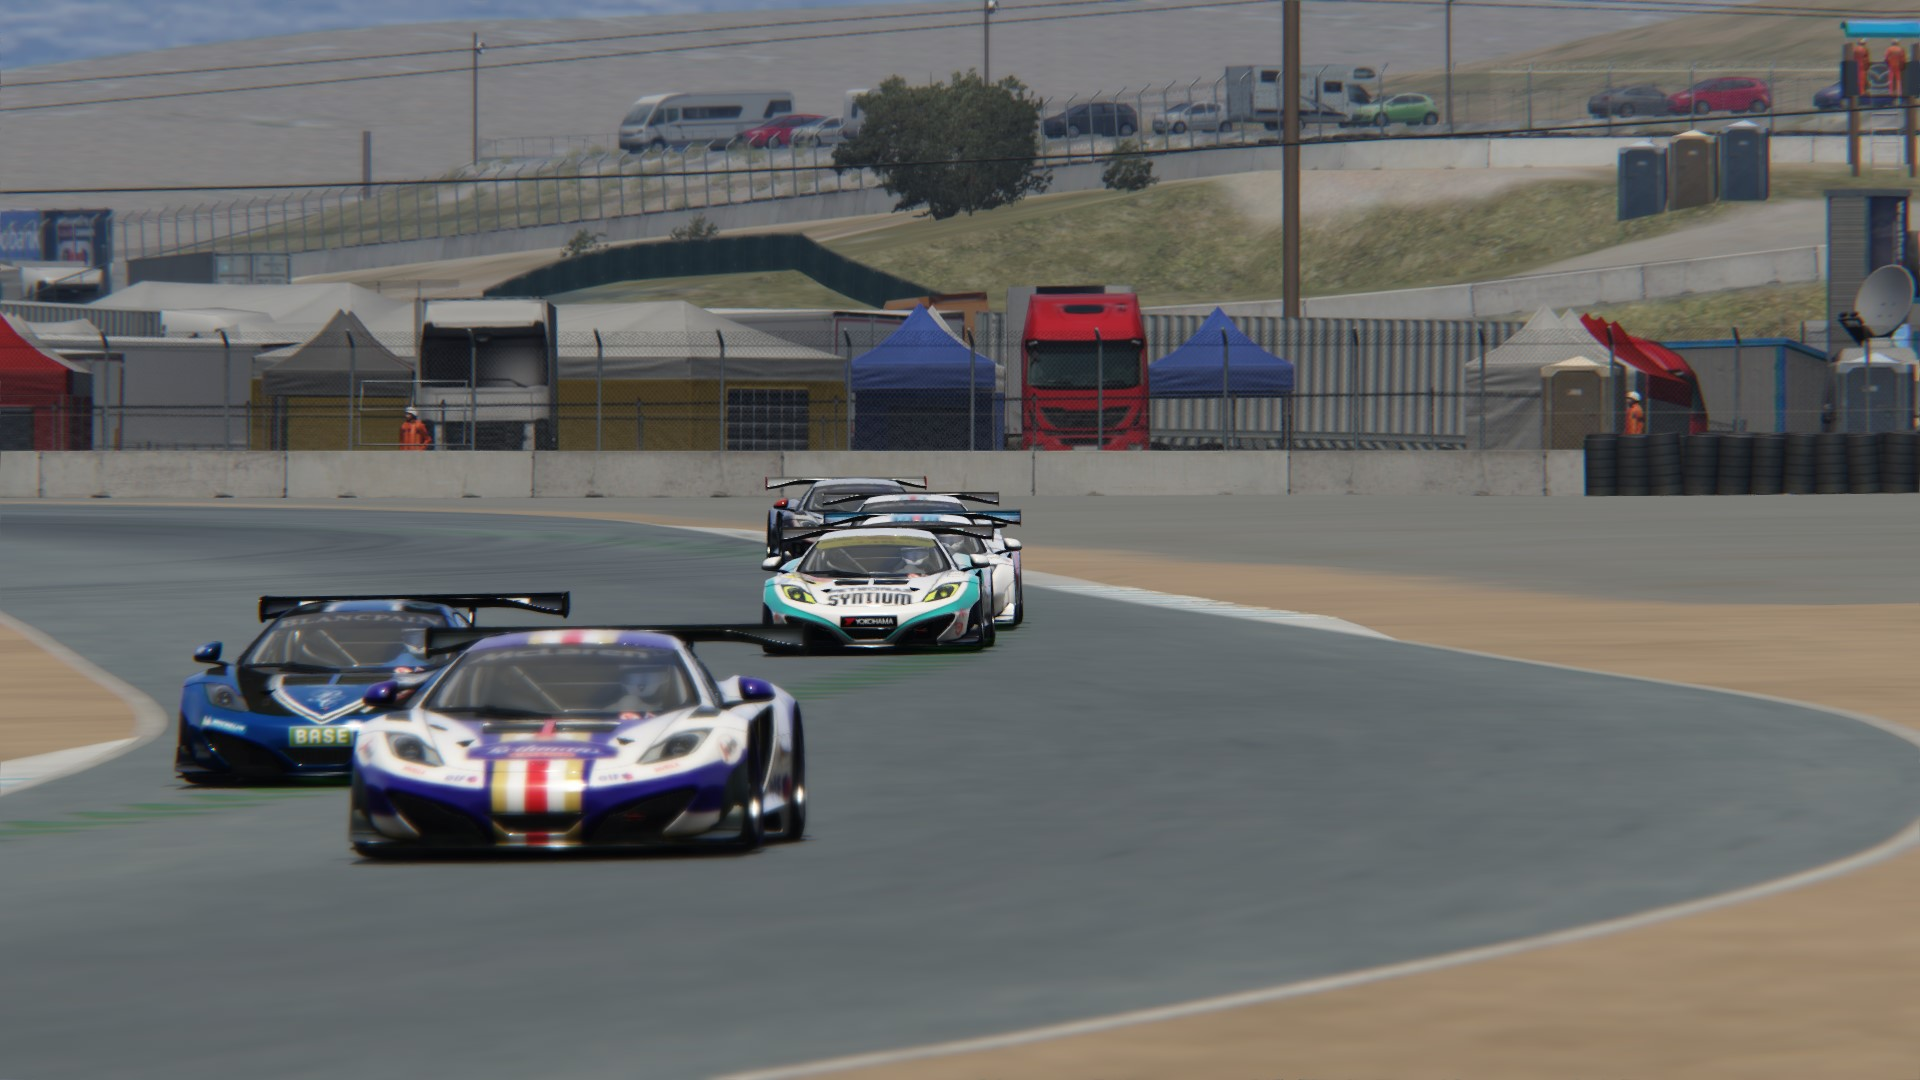 Screenshot_mclaren_mp412c_gt3_ks_laguna_seca_23-12-117-15-18-45.jpg